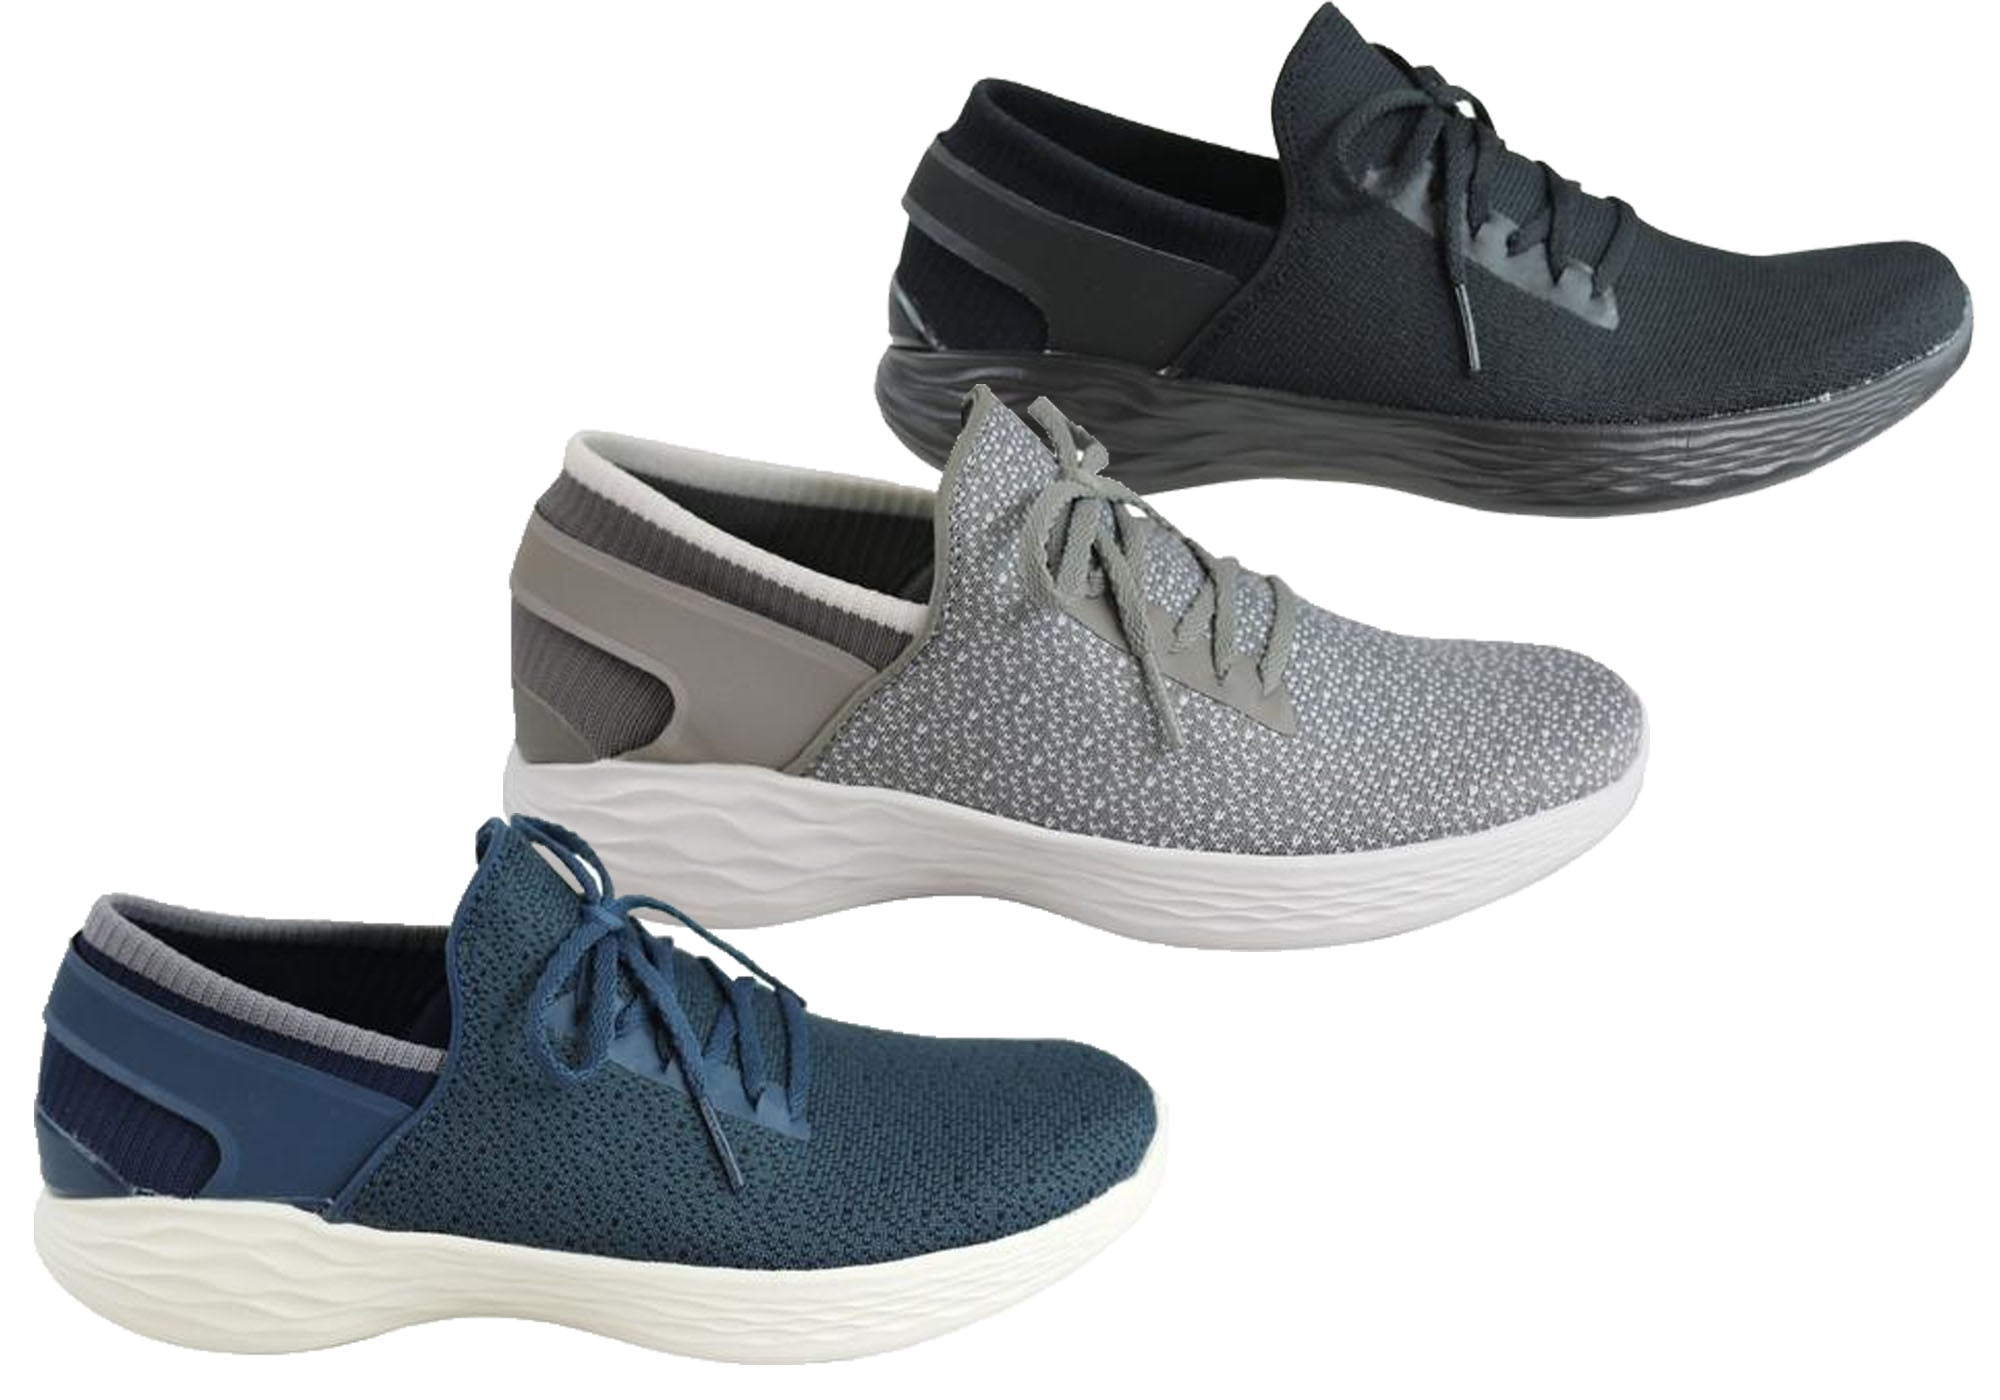 19b4f947ccef NEW SKECHERS YOU WOMENS INSPIRE COMFORTABLE CASUAL SLIP ON SHOES